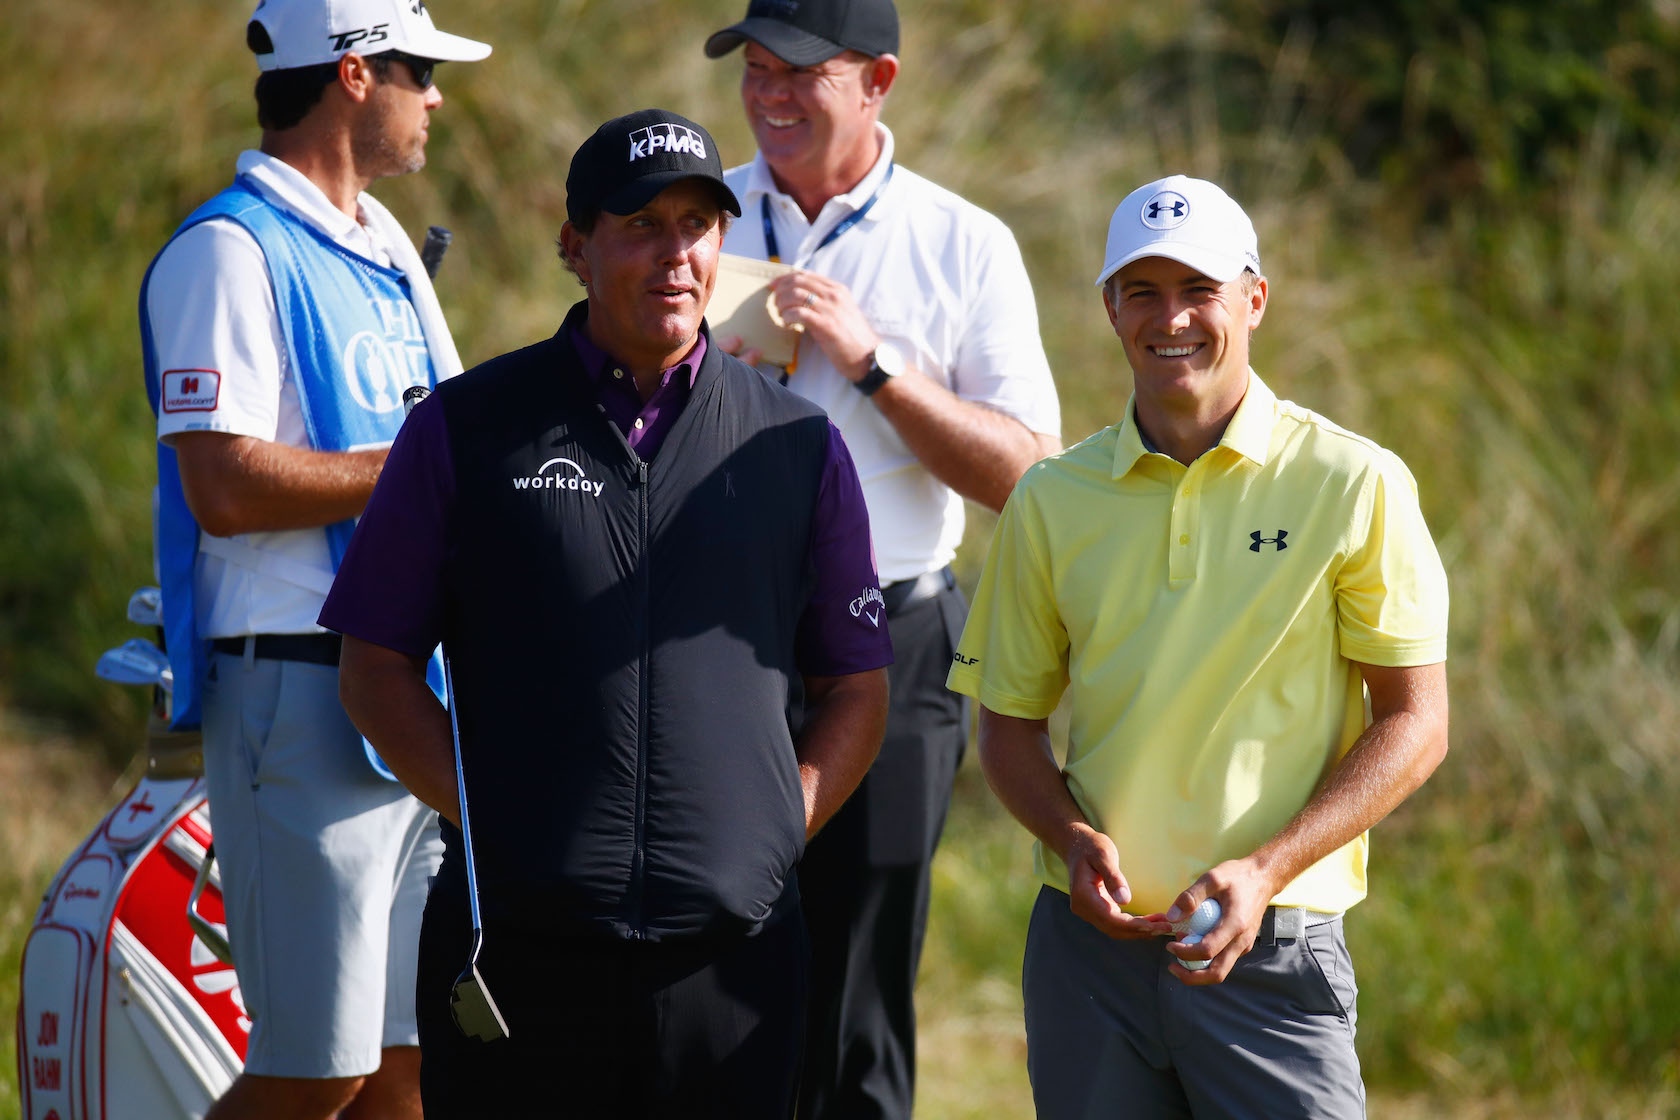 2017 Open Championship: Preview Day 2 - Jordan Chats with Phil Mickelson